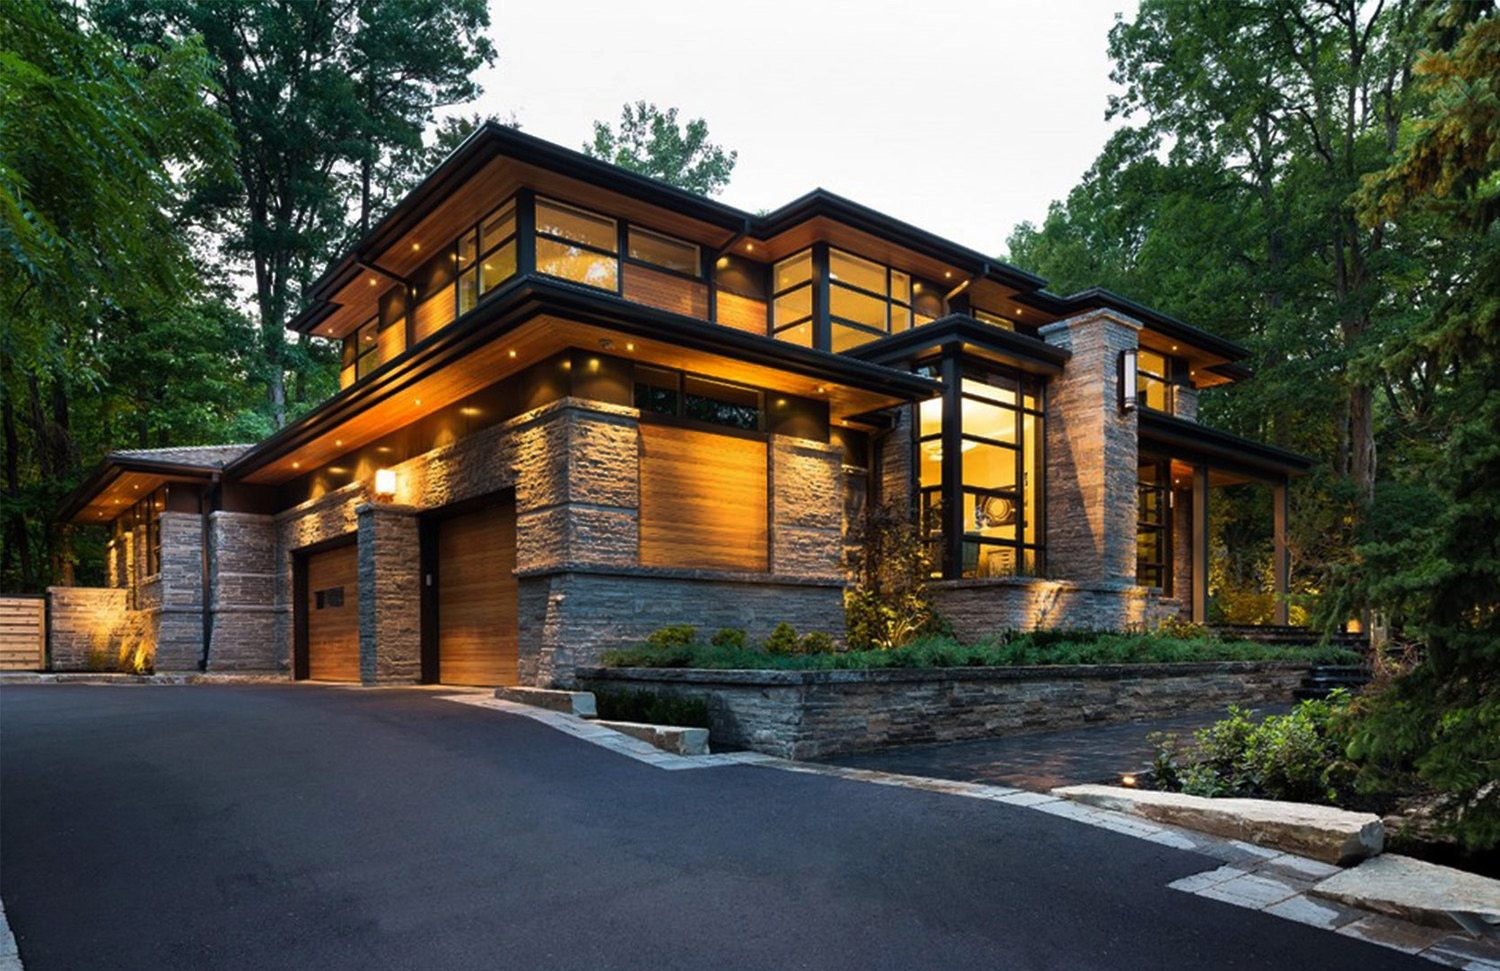 David small designs luxury homes profile ivan real estate for Contemporary home builders